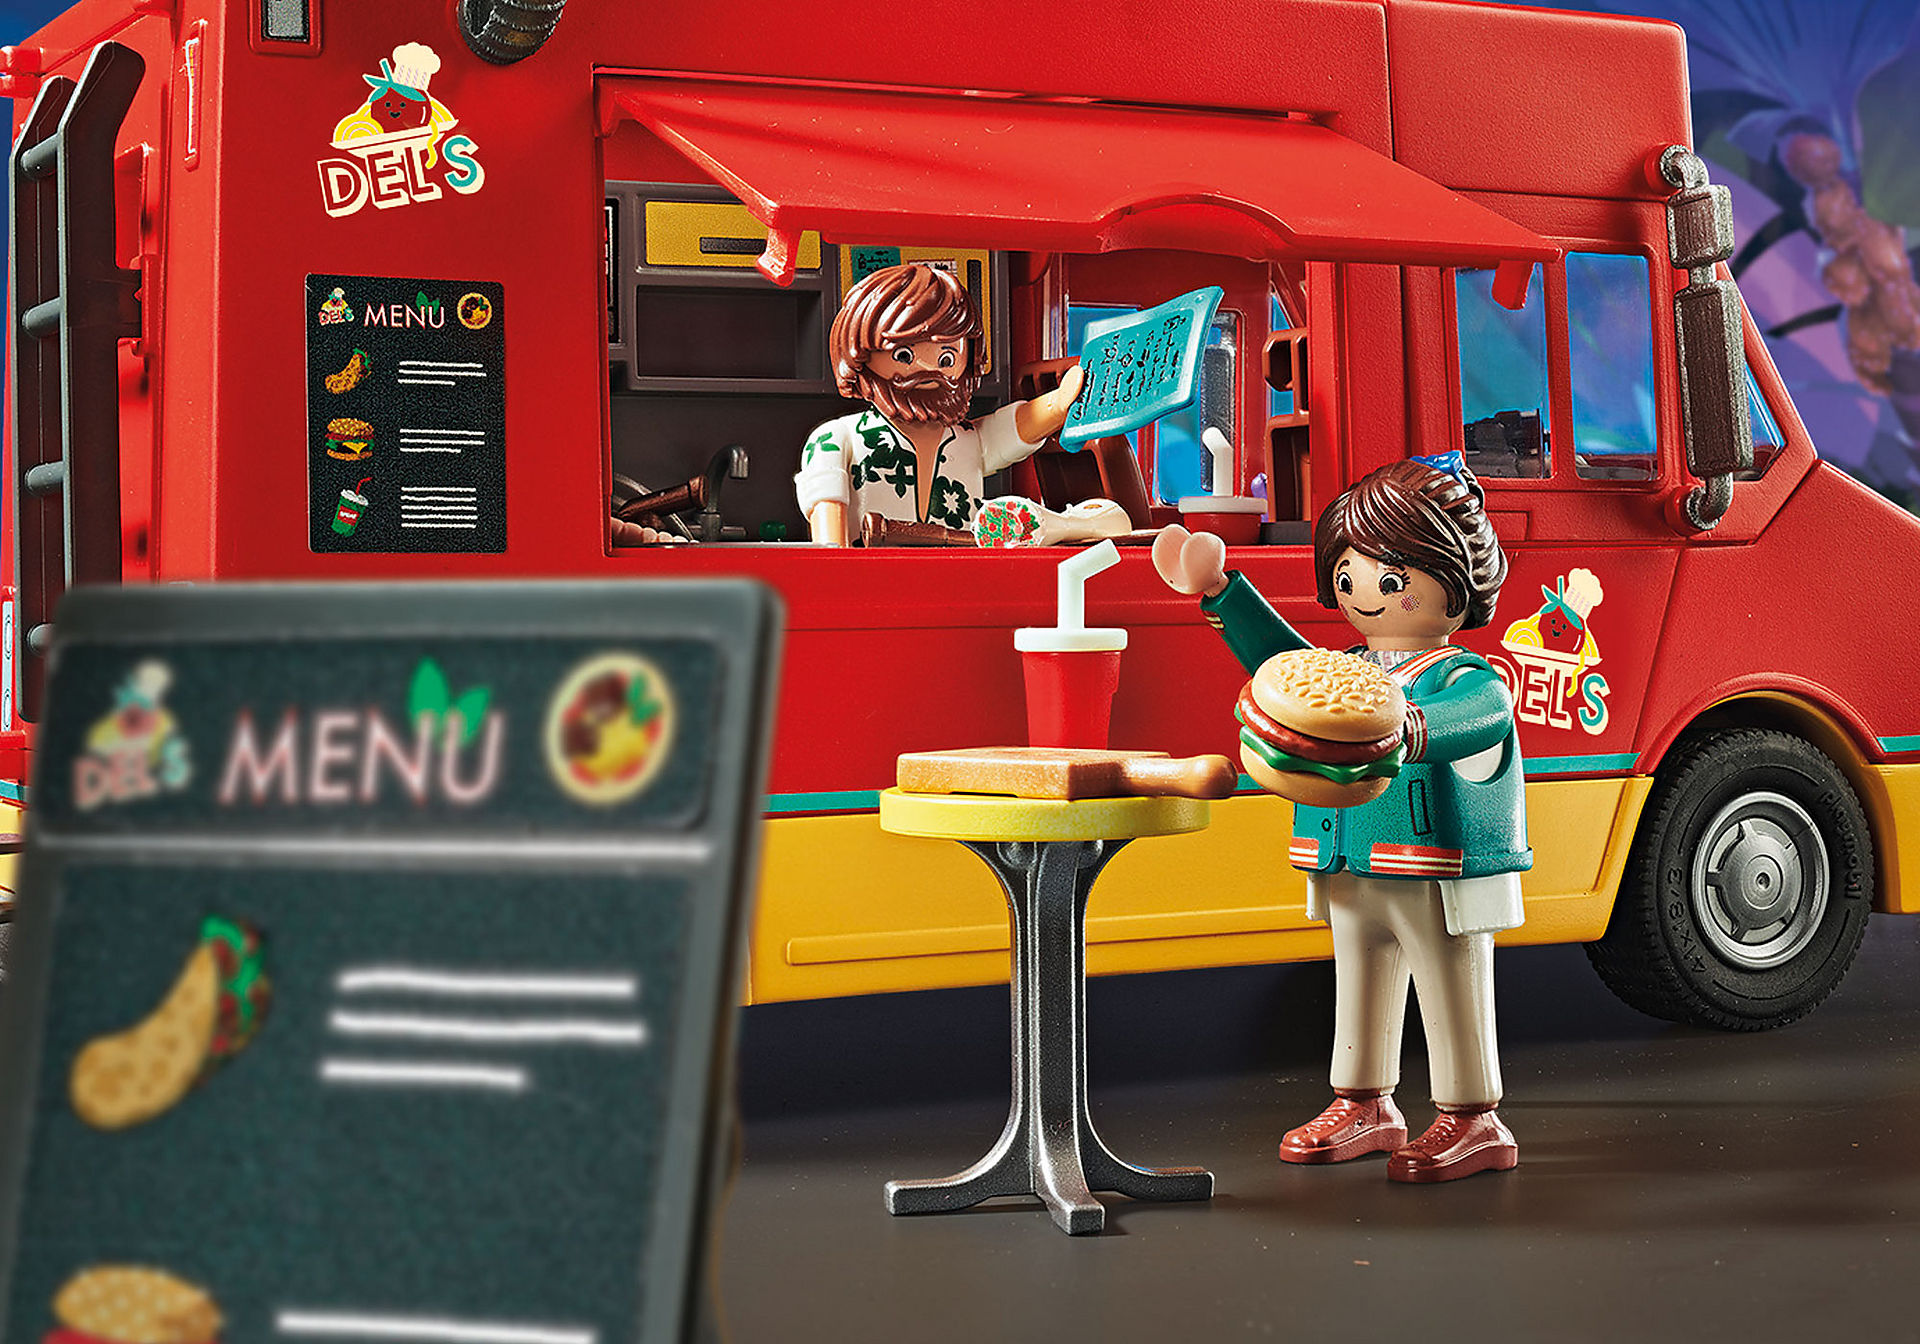 http://media.playmobil.com/i/playmobil/70075_product_extra2/PLAYMOBIL: THE MOVIE Del's Food truck